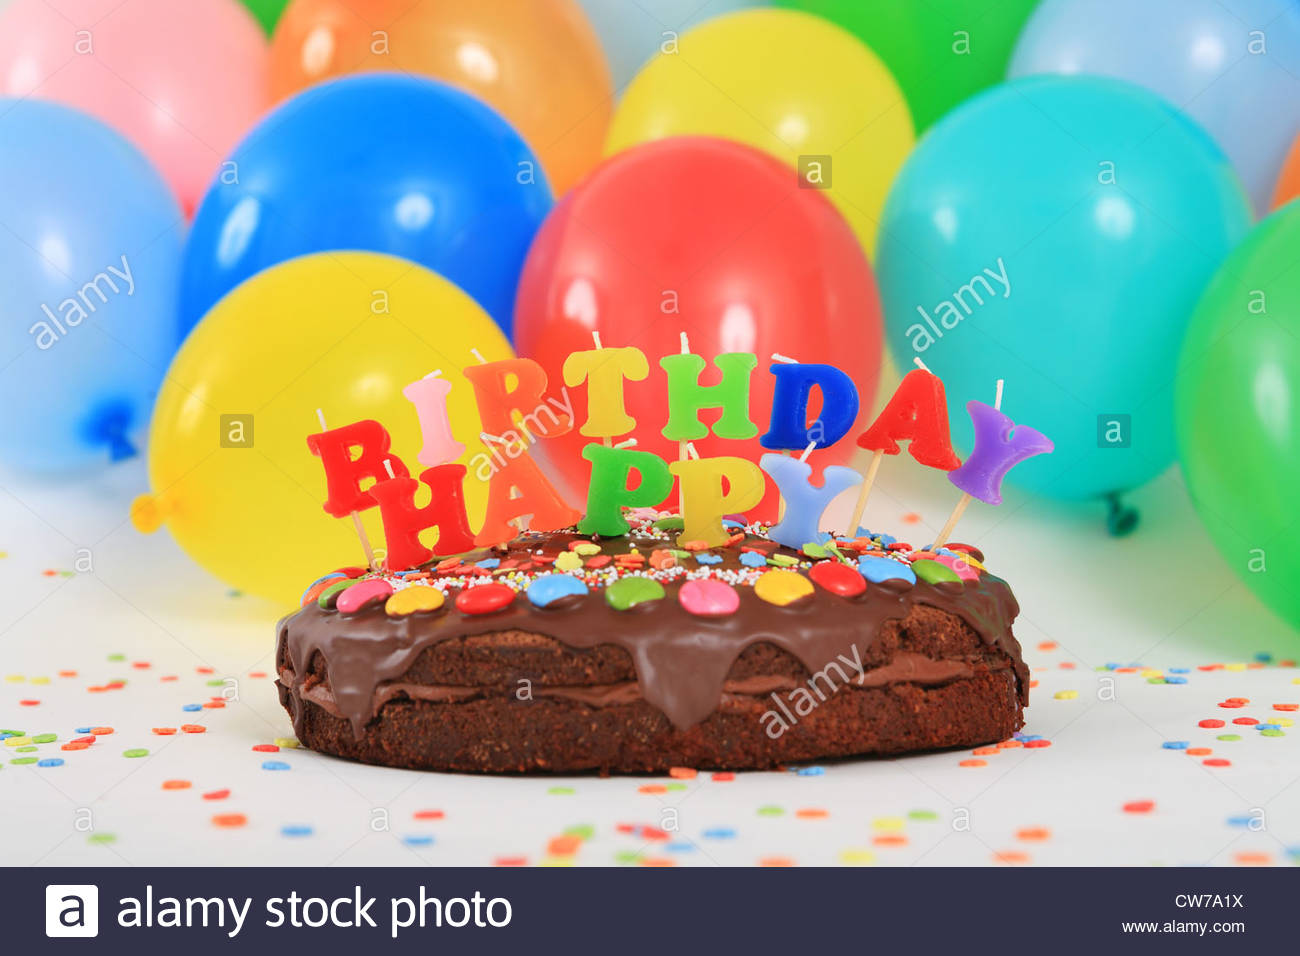 picture of birthday cake and balloons ; surprising-design-ideas-happy-birthday-cake-and-balloons-chocolate-with-candles-stock